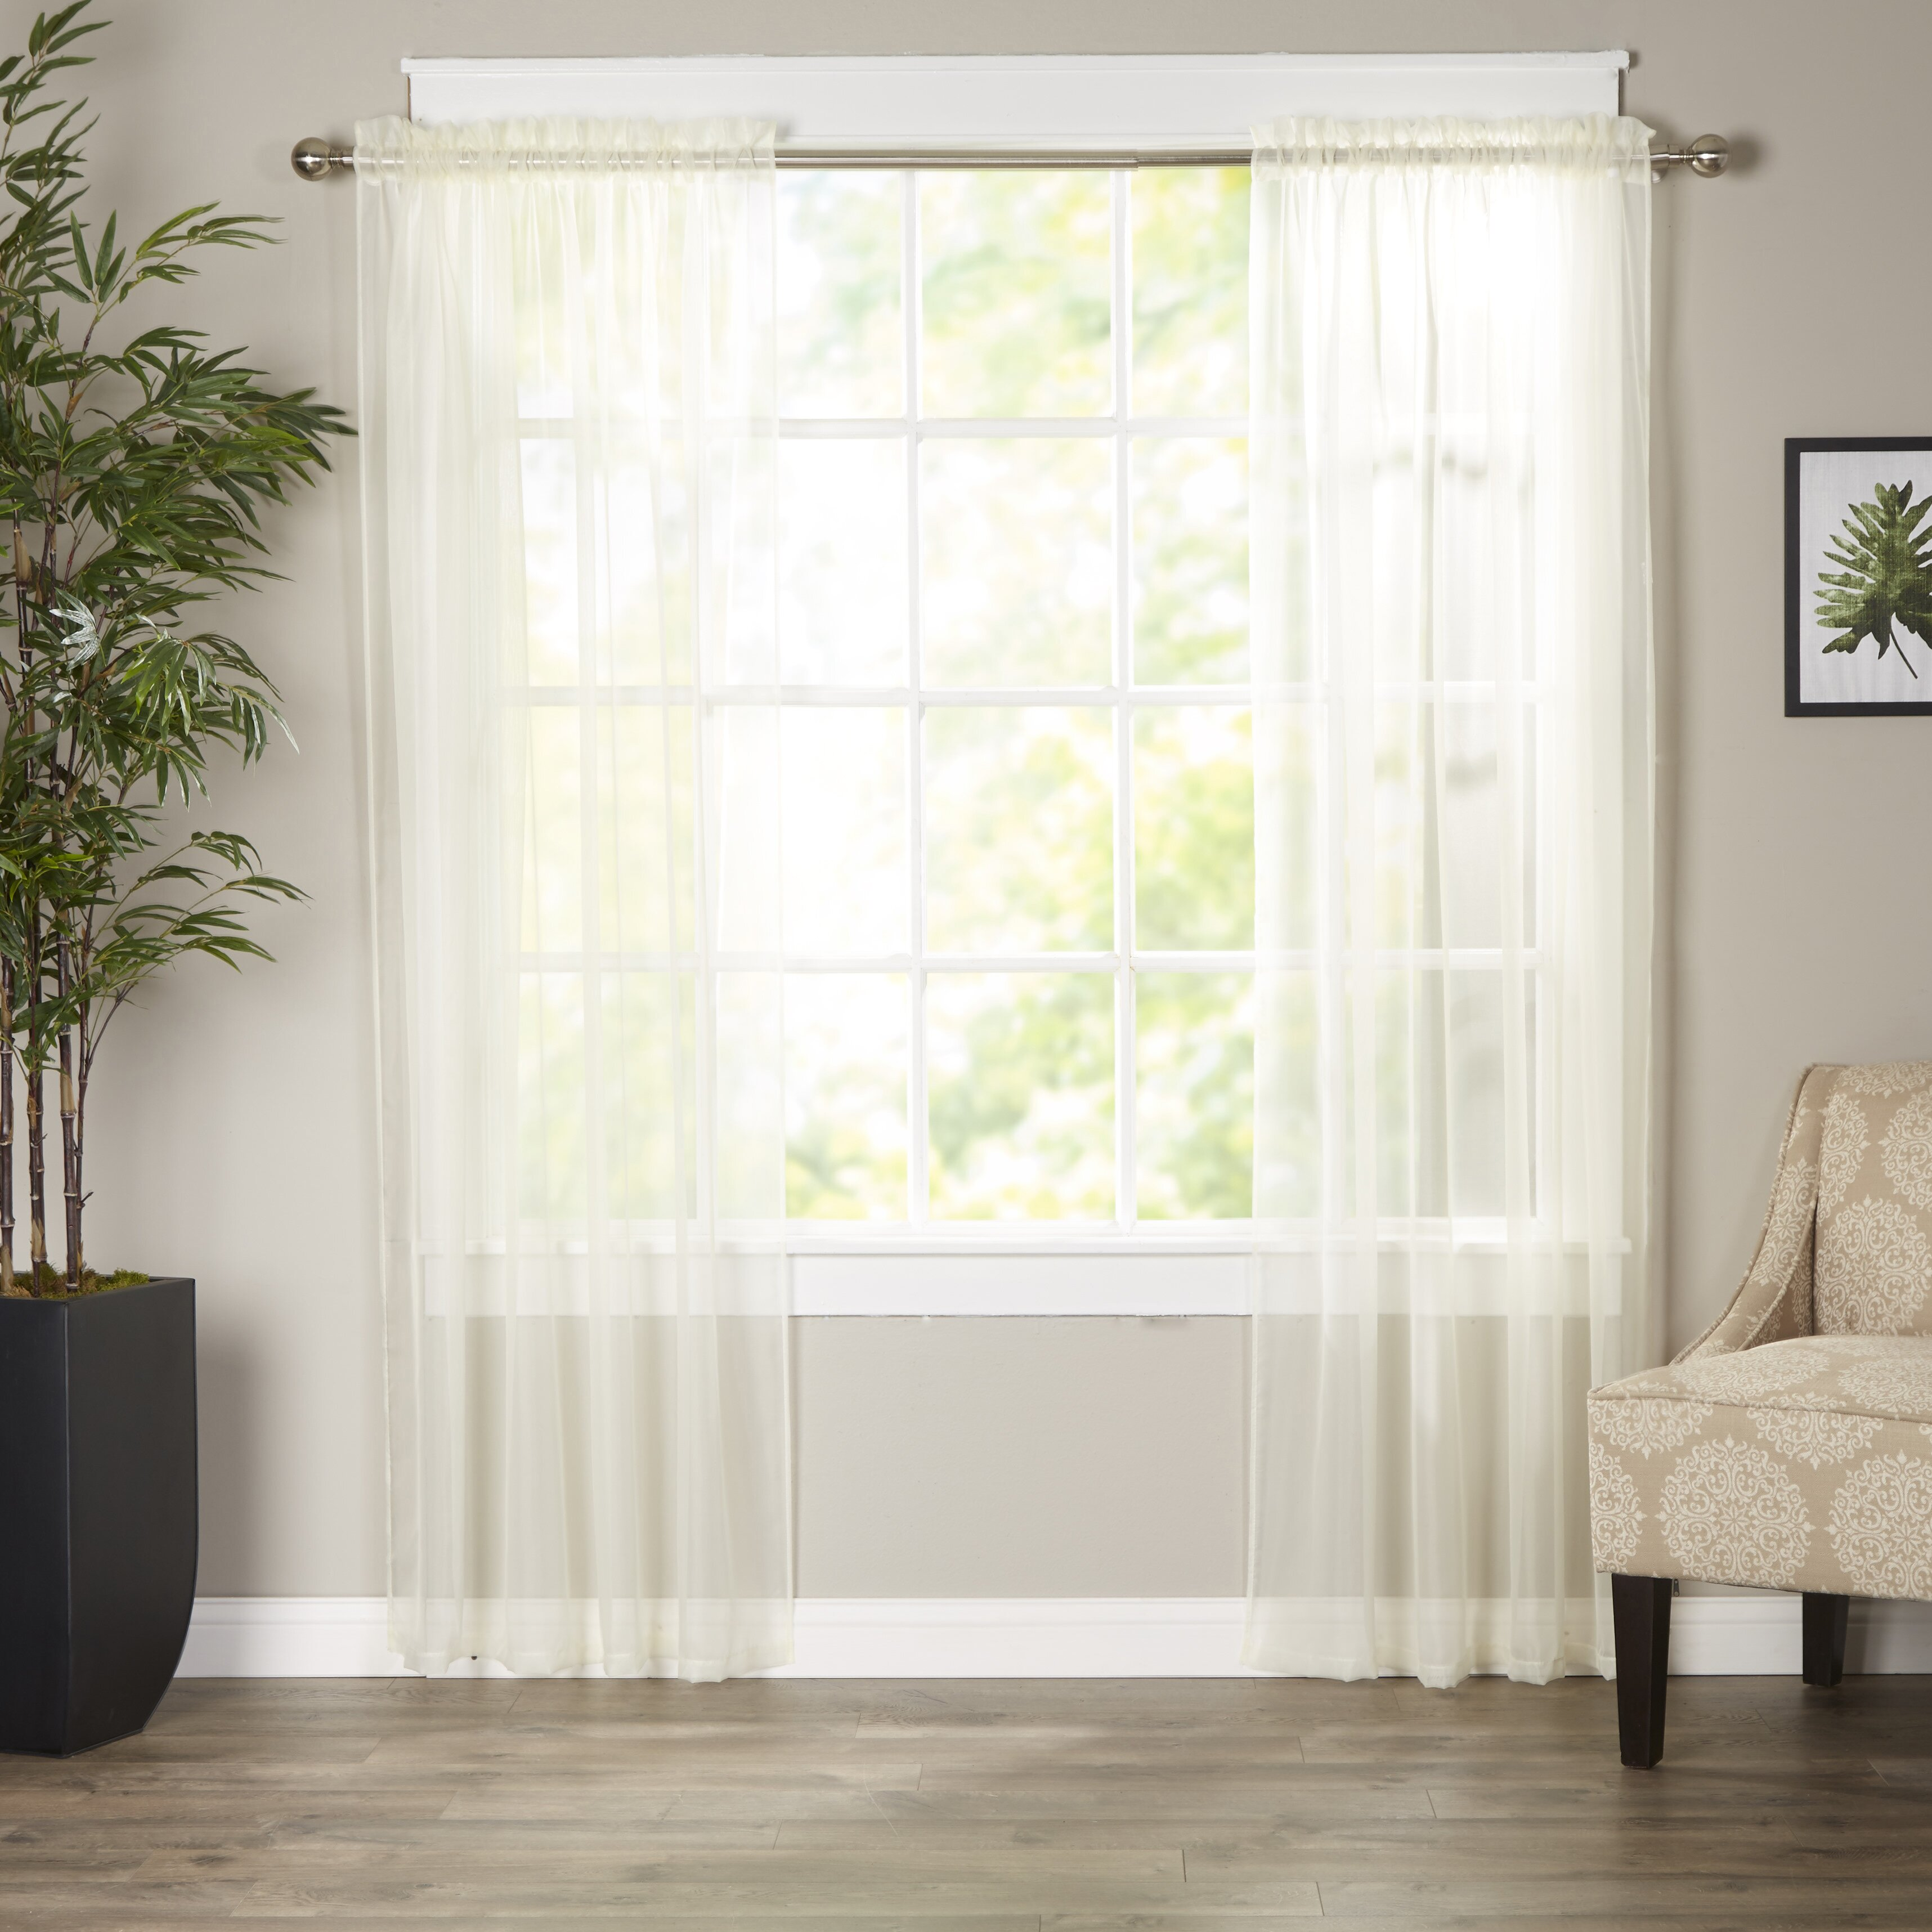 Wayfair Basics Wayfair Basics Polyester Curtain Panel  : Wayfair Basics Wayfair Basics Polyester Curtain Panel WFBS1598 from www.wayfair.com size 3433 x 3433 jpeg 1237kB